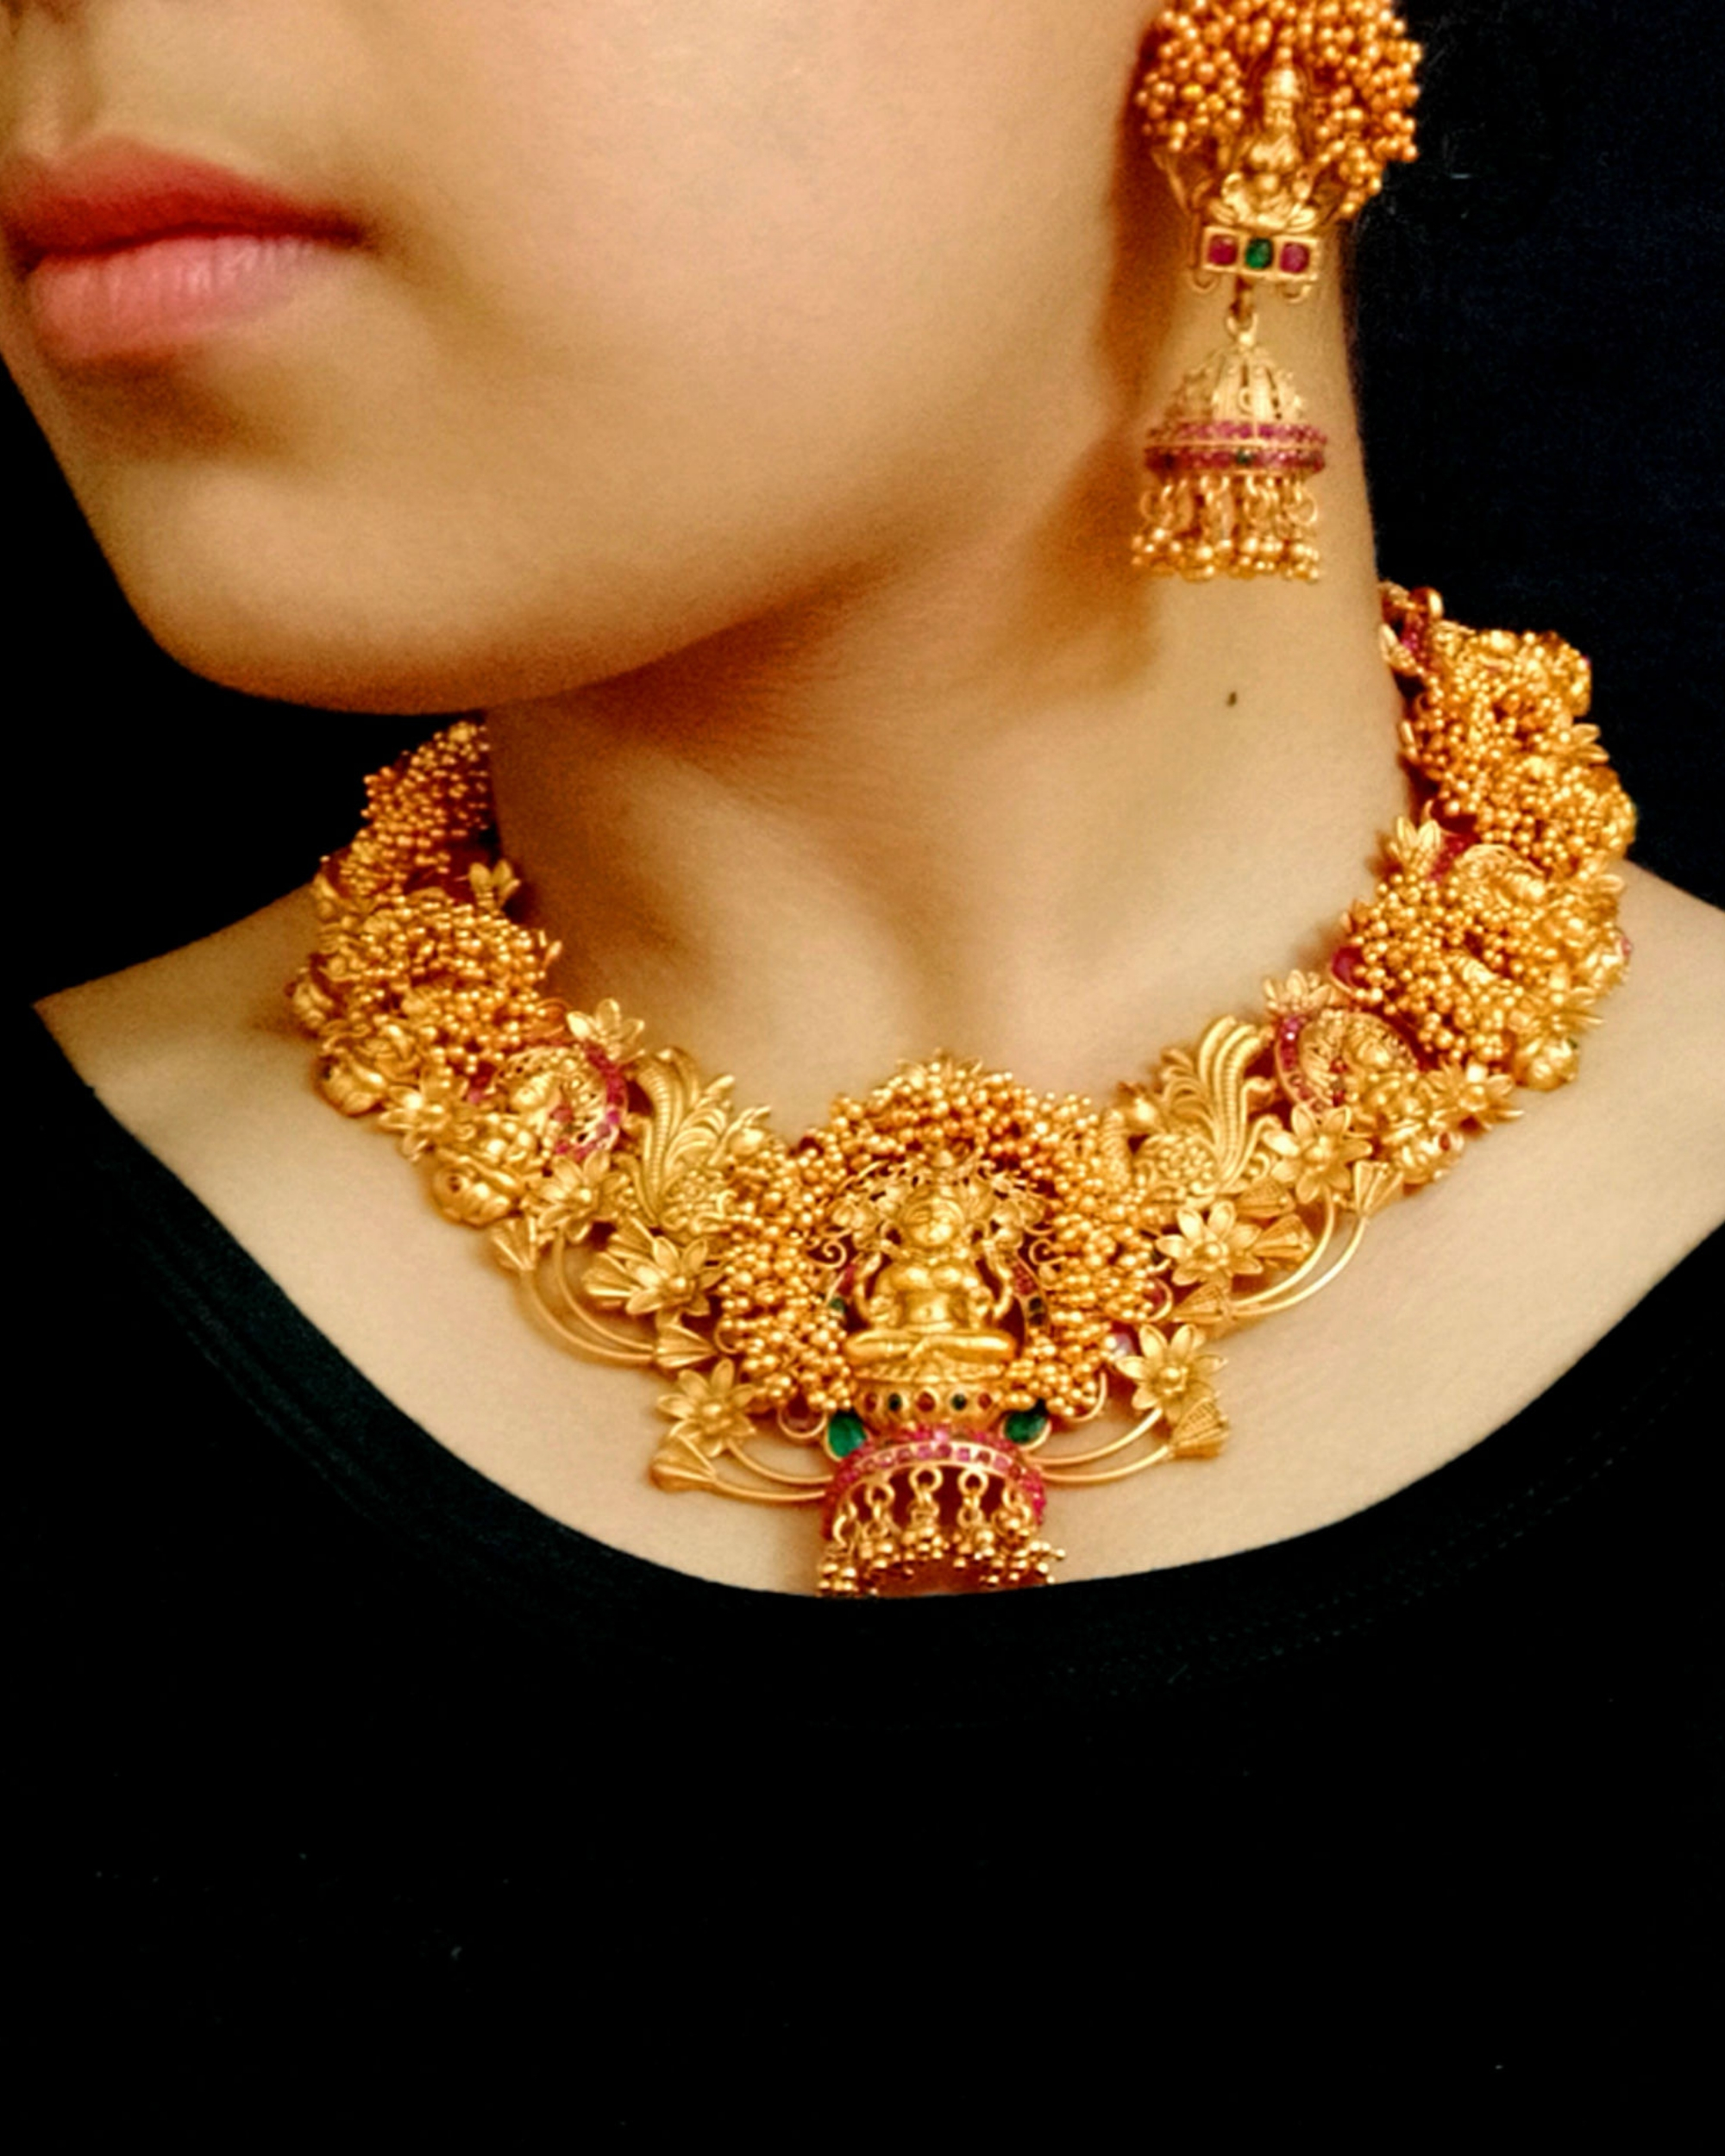 Intricate antique gold necklace and earrings set